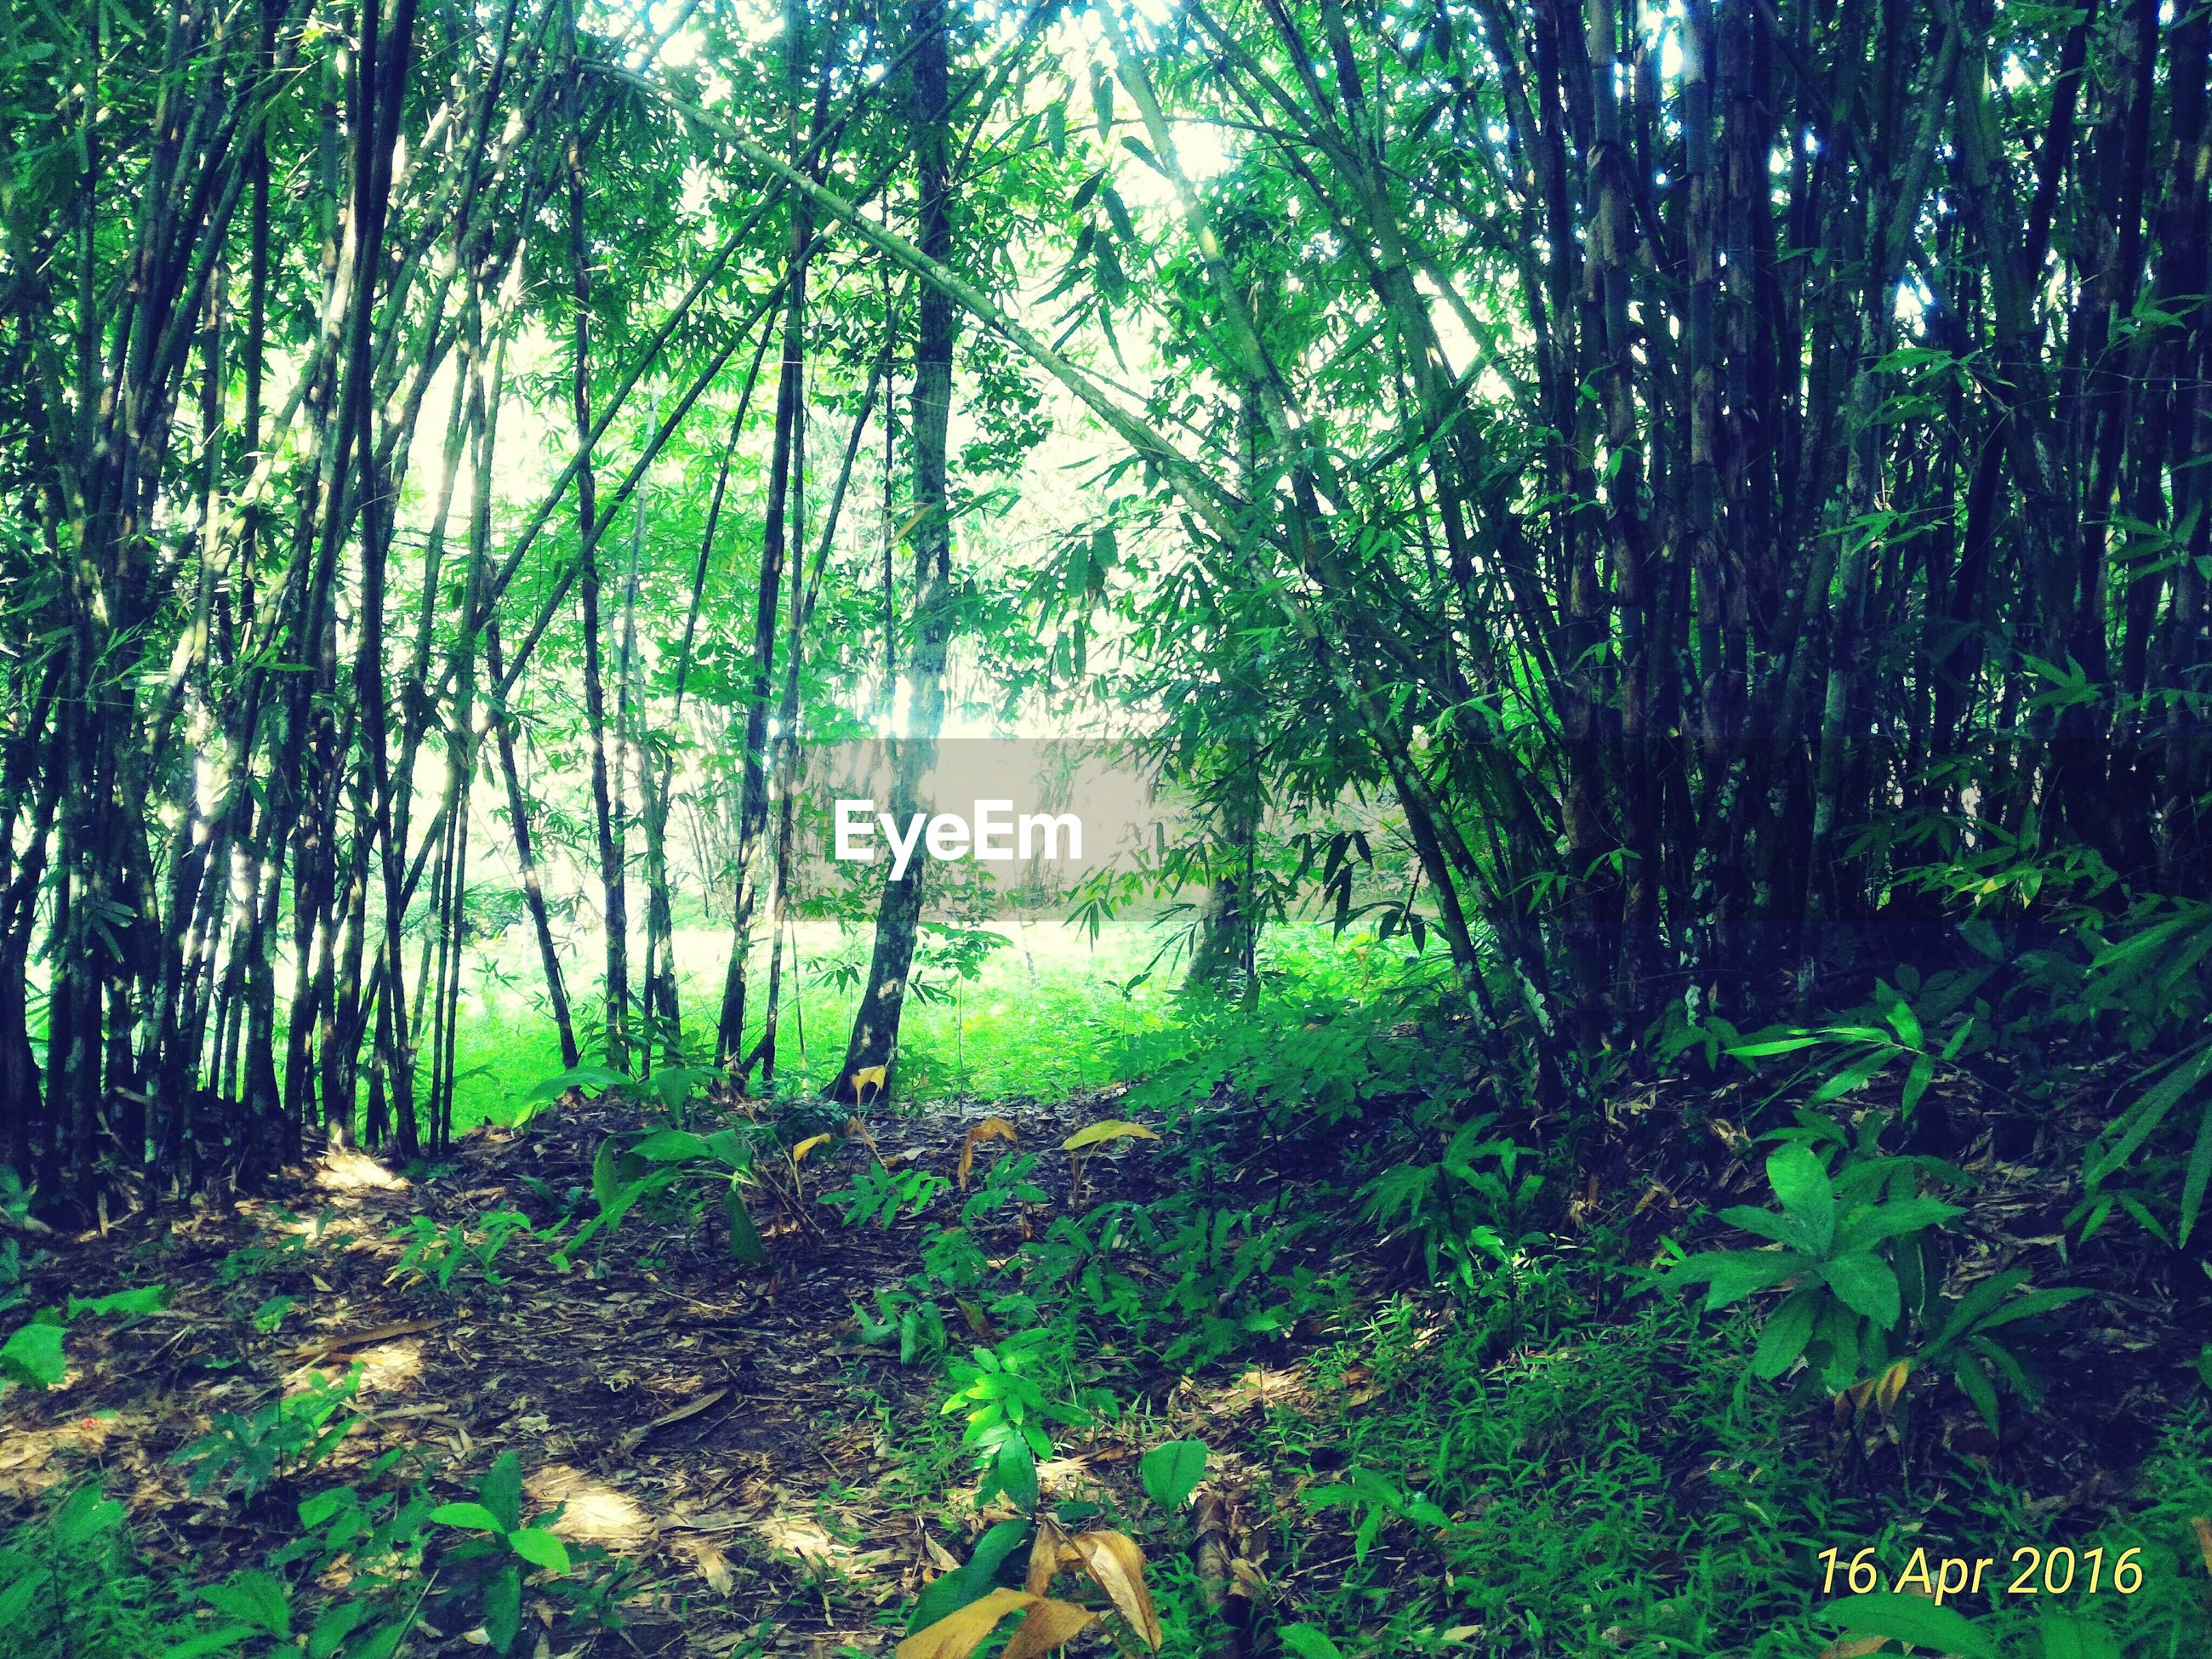 forest, tree, land, plant, tranquility, nature, beauty in nature, green color, day, woodland, growth, no people, tranquil scene, environment, scenics - nature, landscape, outdoors, non-urban scene, green, direction, bamboo - plant